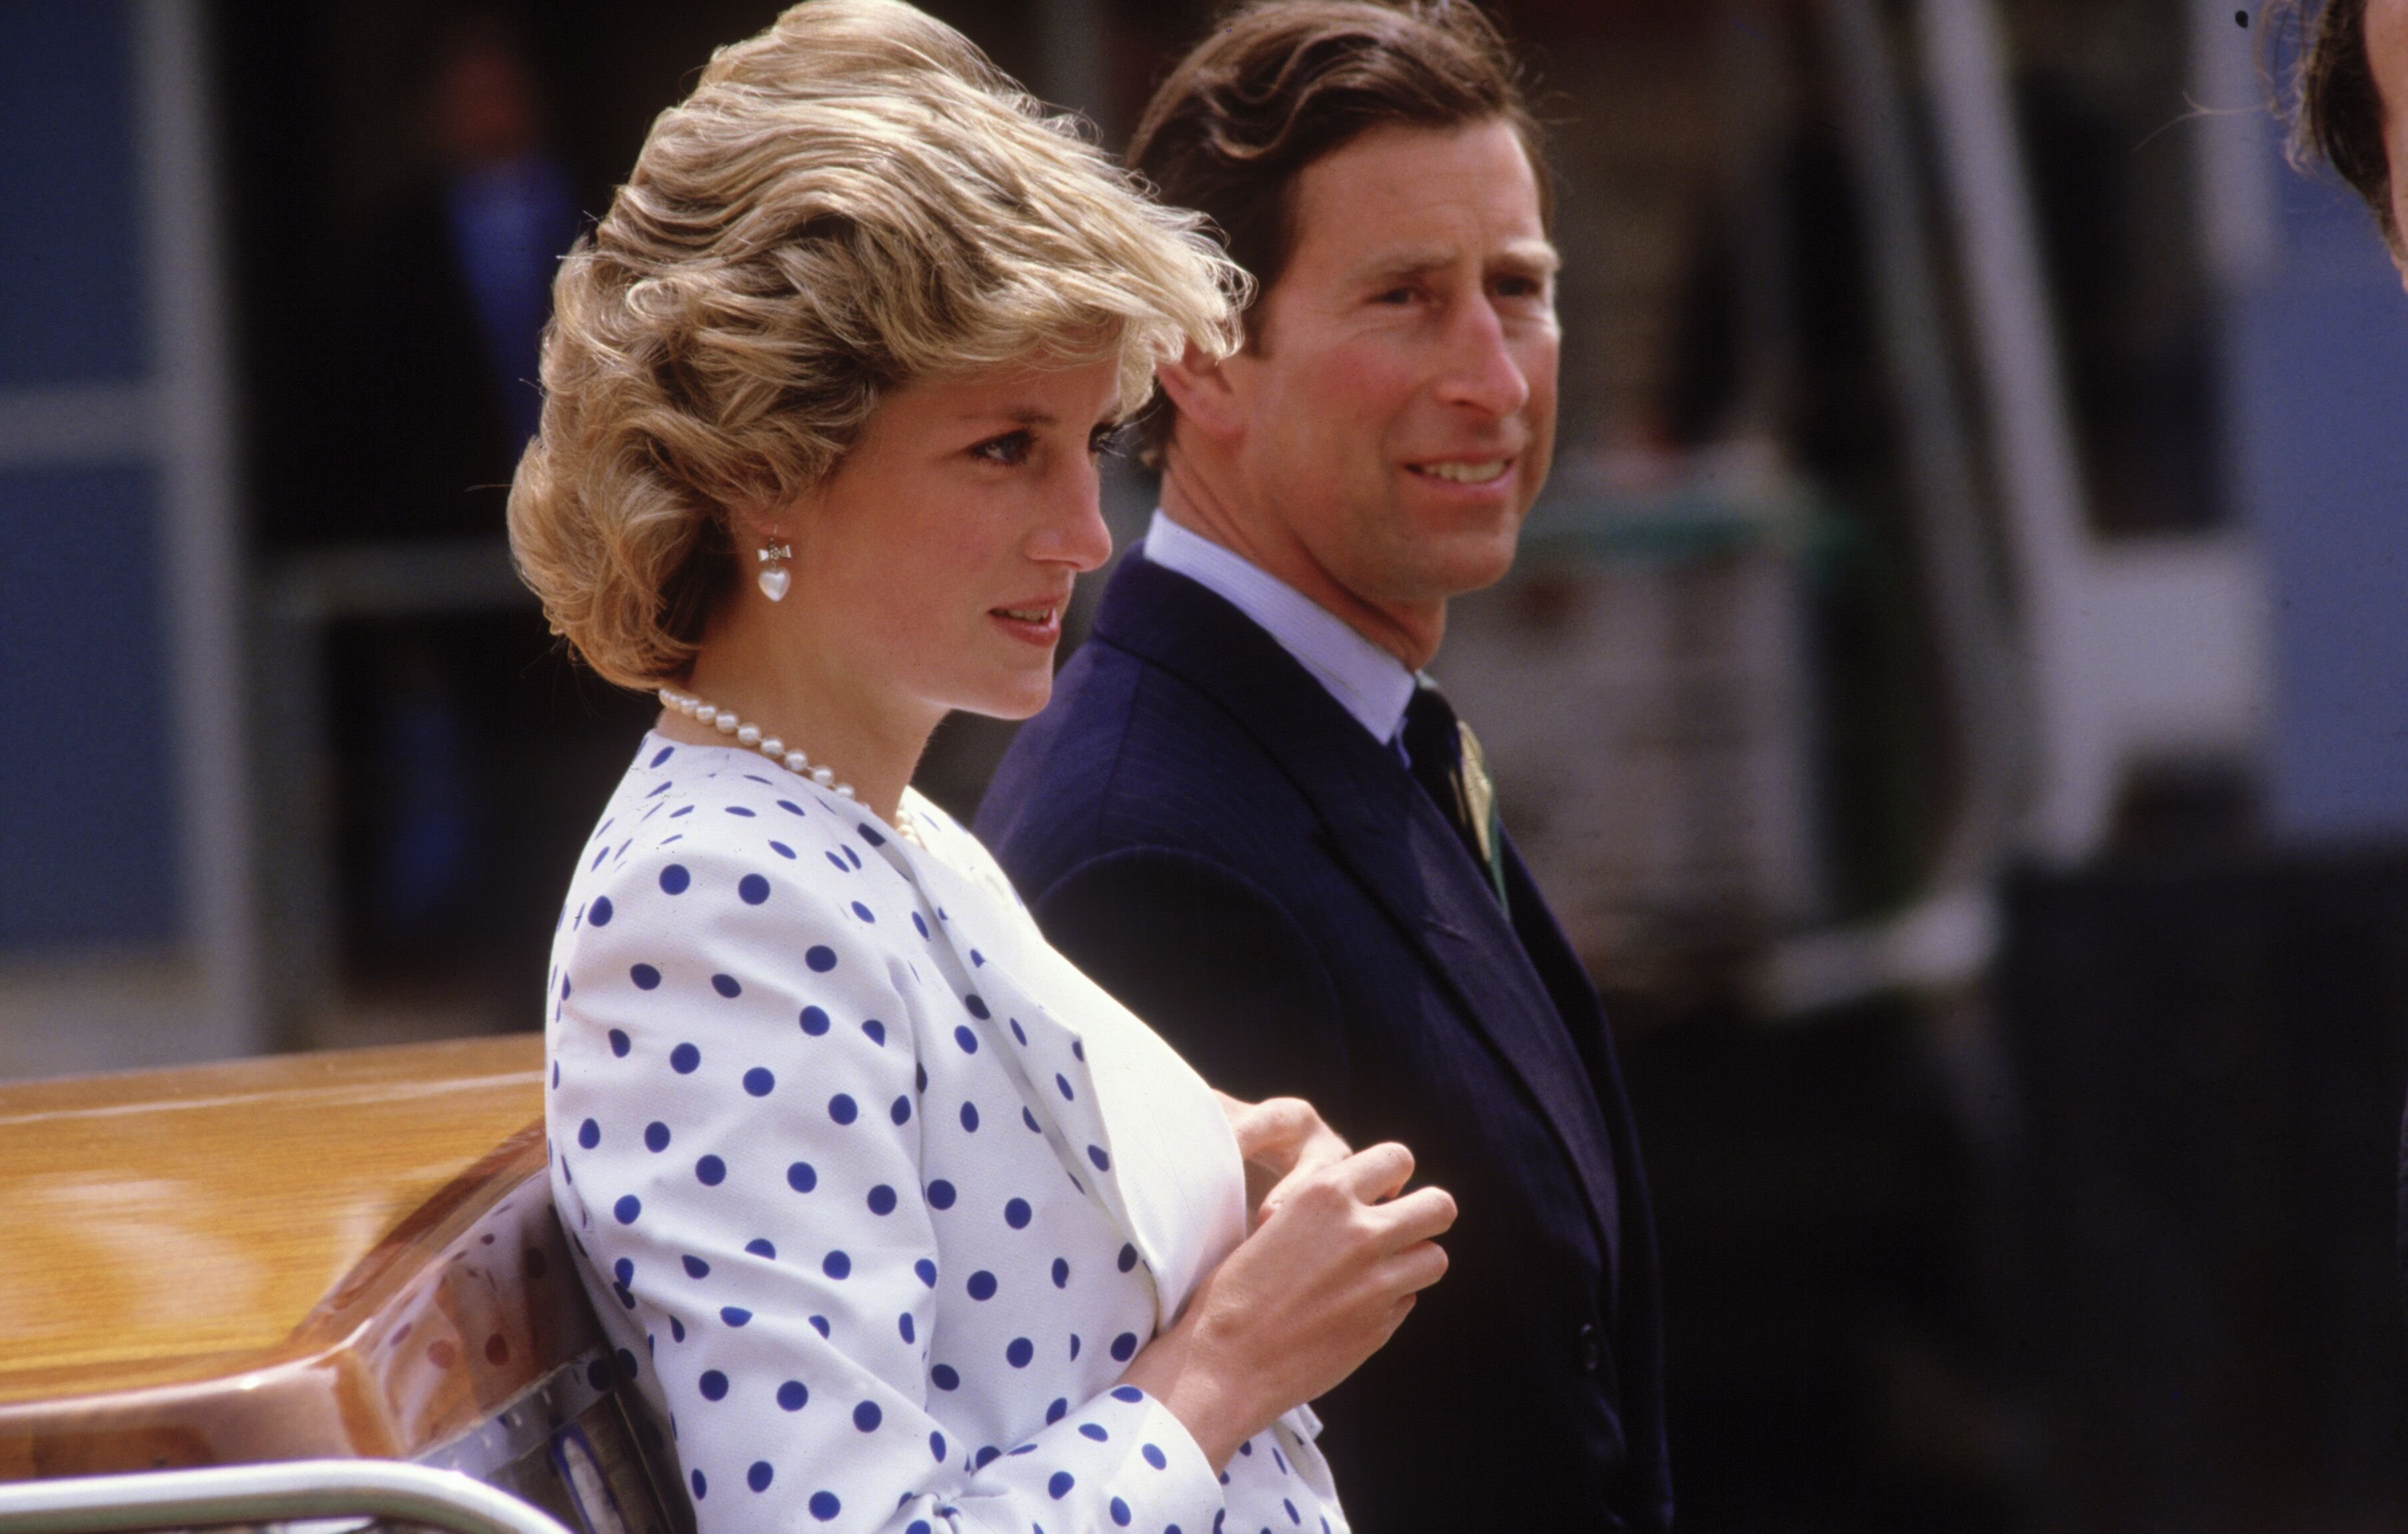 Princess Diana and Prince Charles in Italy. | Source: Getty Images